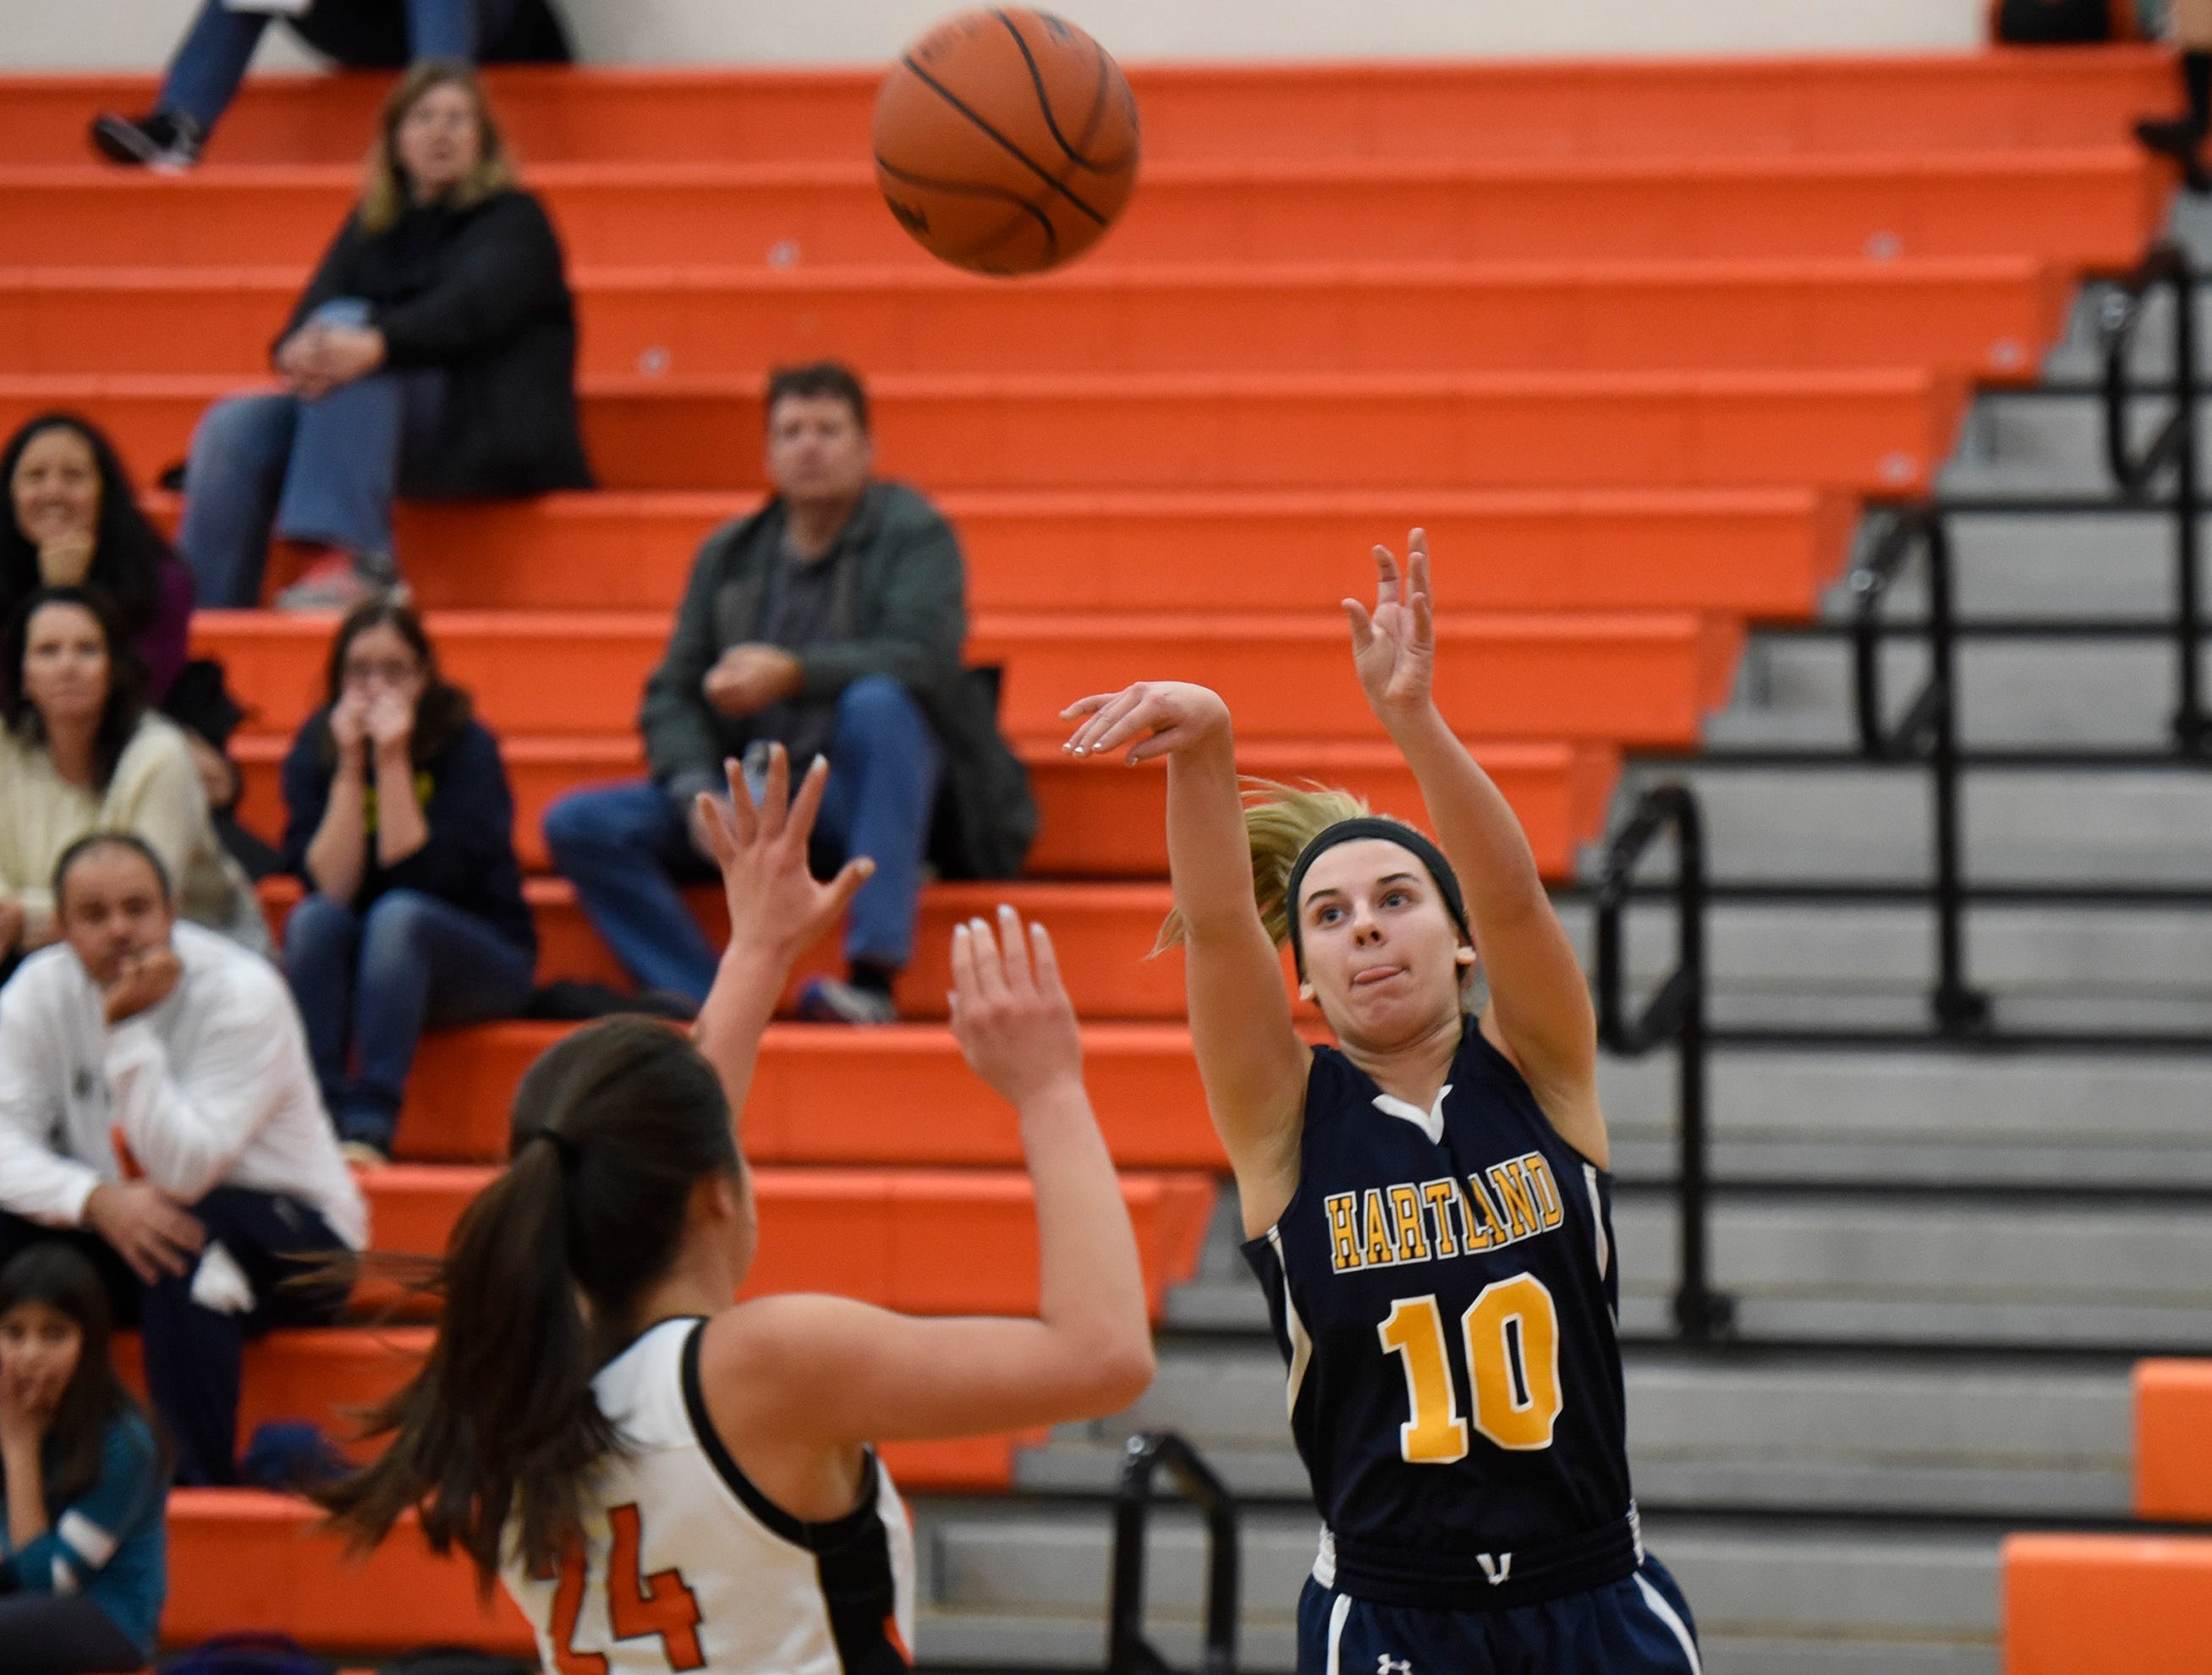 Hartland's Grace Metz (24) shoots over Northville's Nicole Martin (24) during a KLAA match up between the Mustangs and Eagles at Northville Jan. 8, 2019